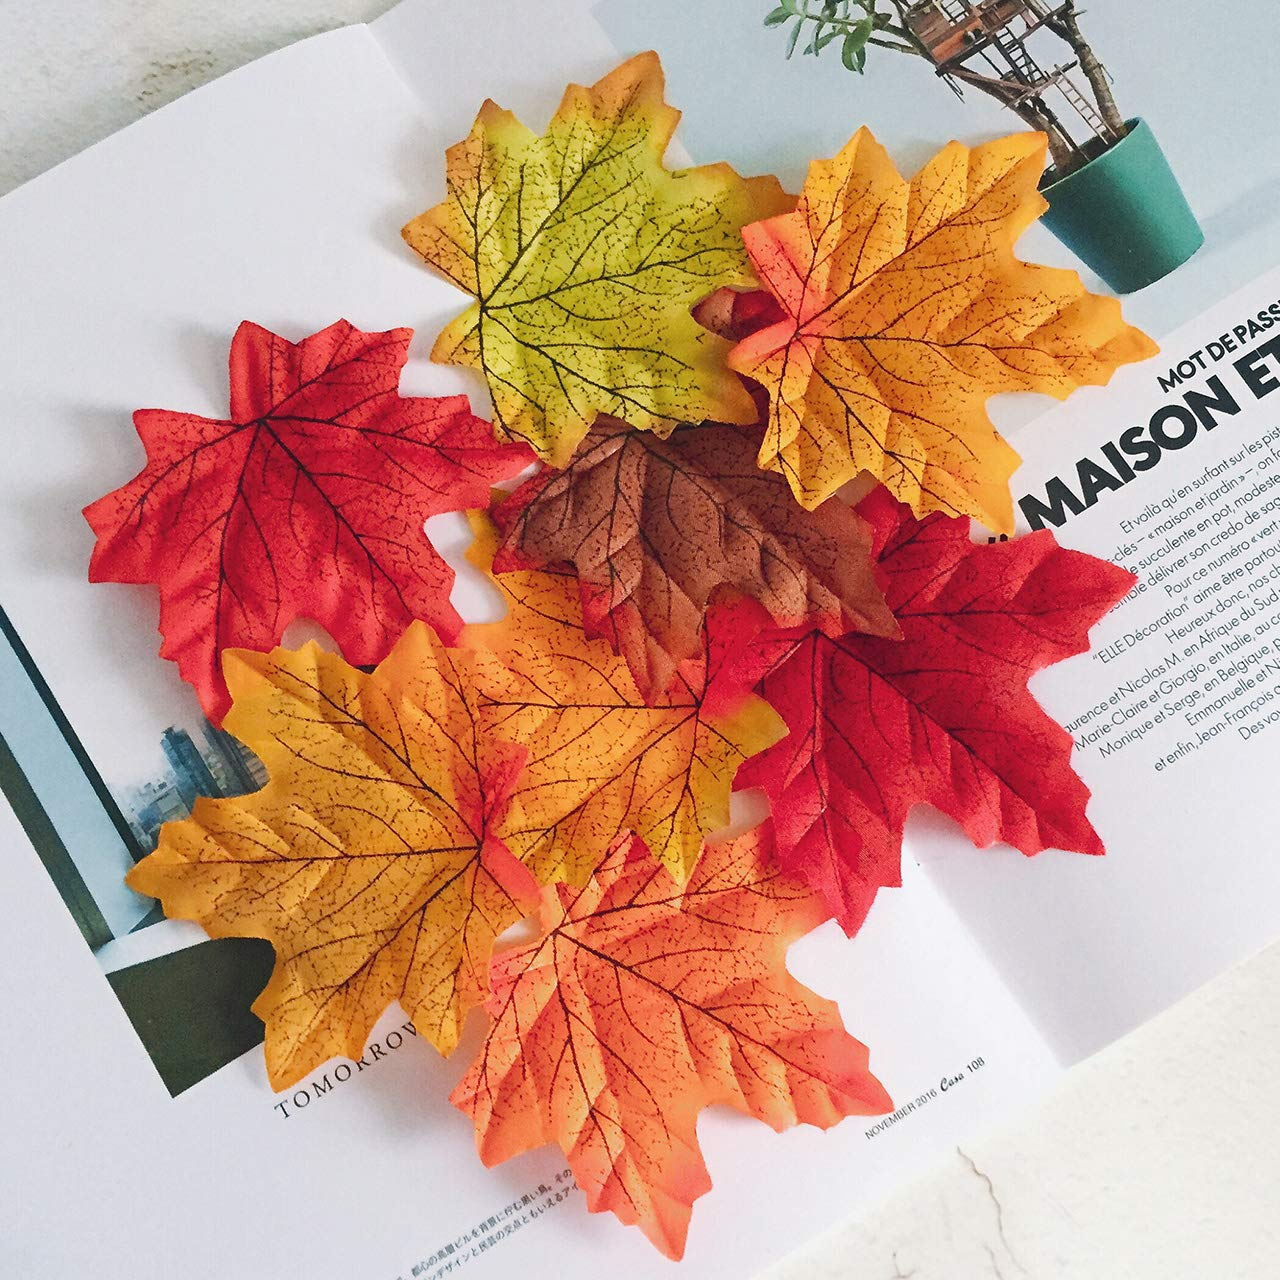 Artificial Maple Leaves, MerryNine Autumn Fall Leaves Bulk Assorted Multicolor Mixed Garland Wedding House Decorations (Maple Leaves-300pcs)